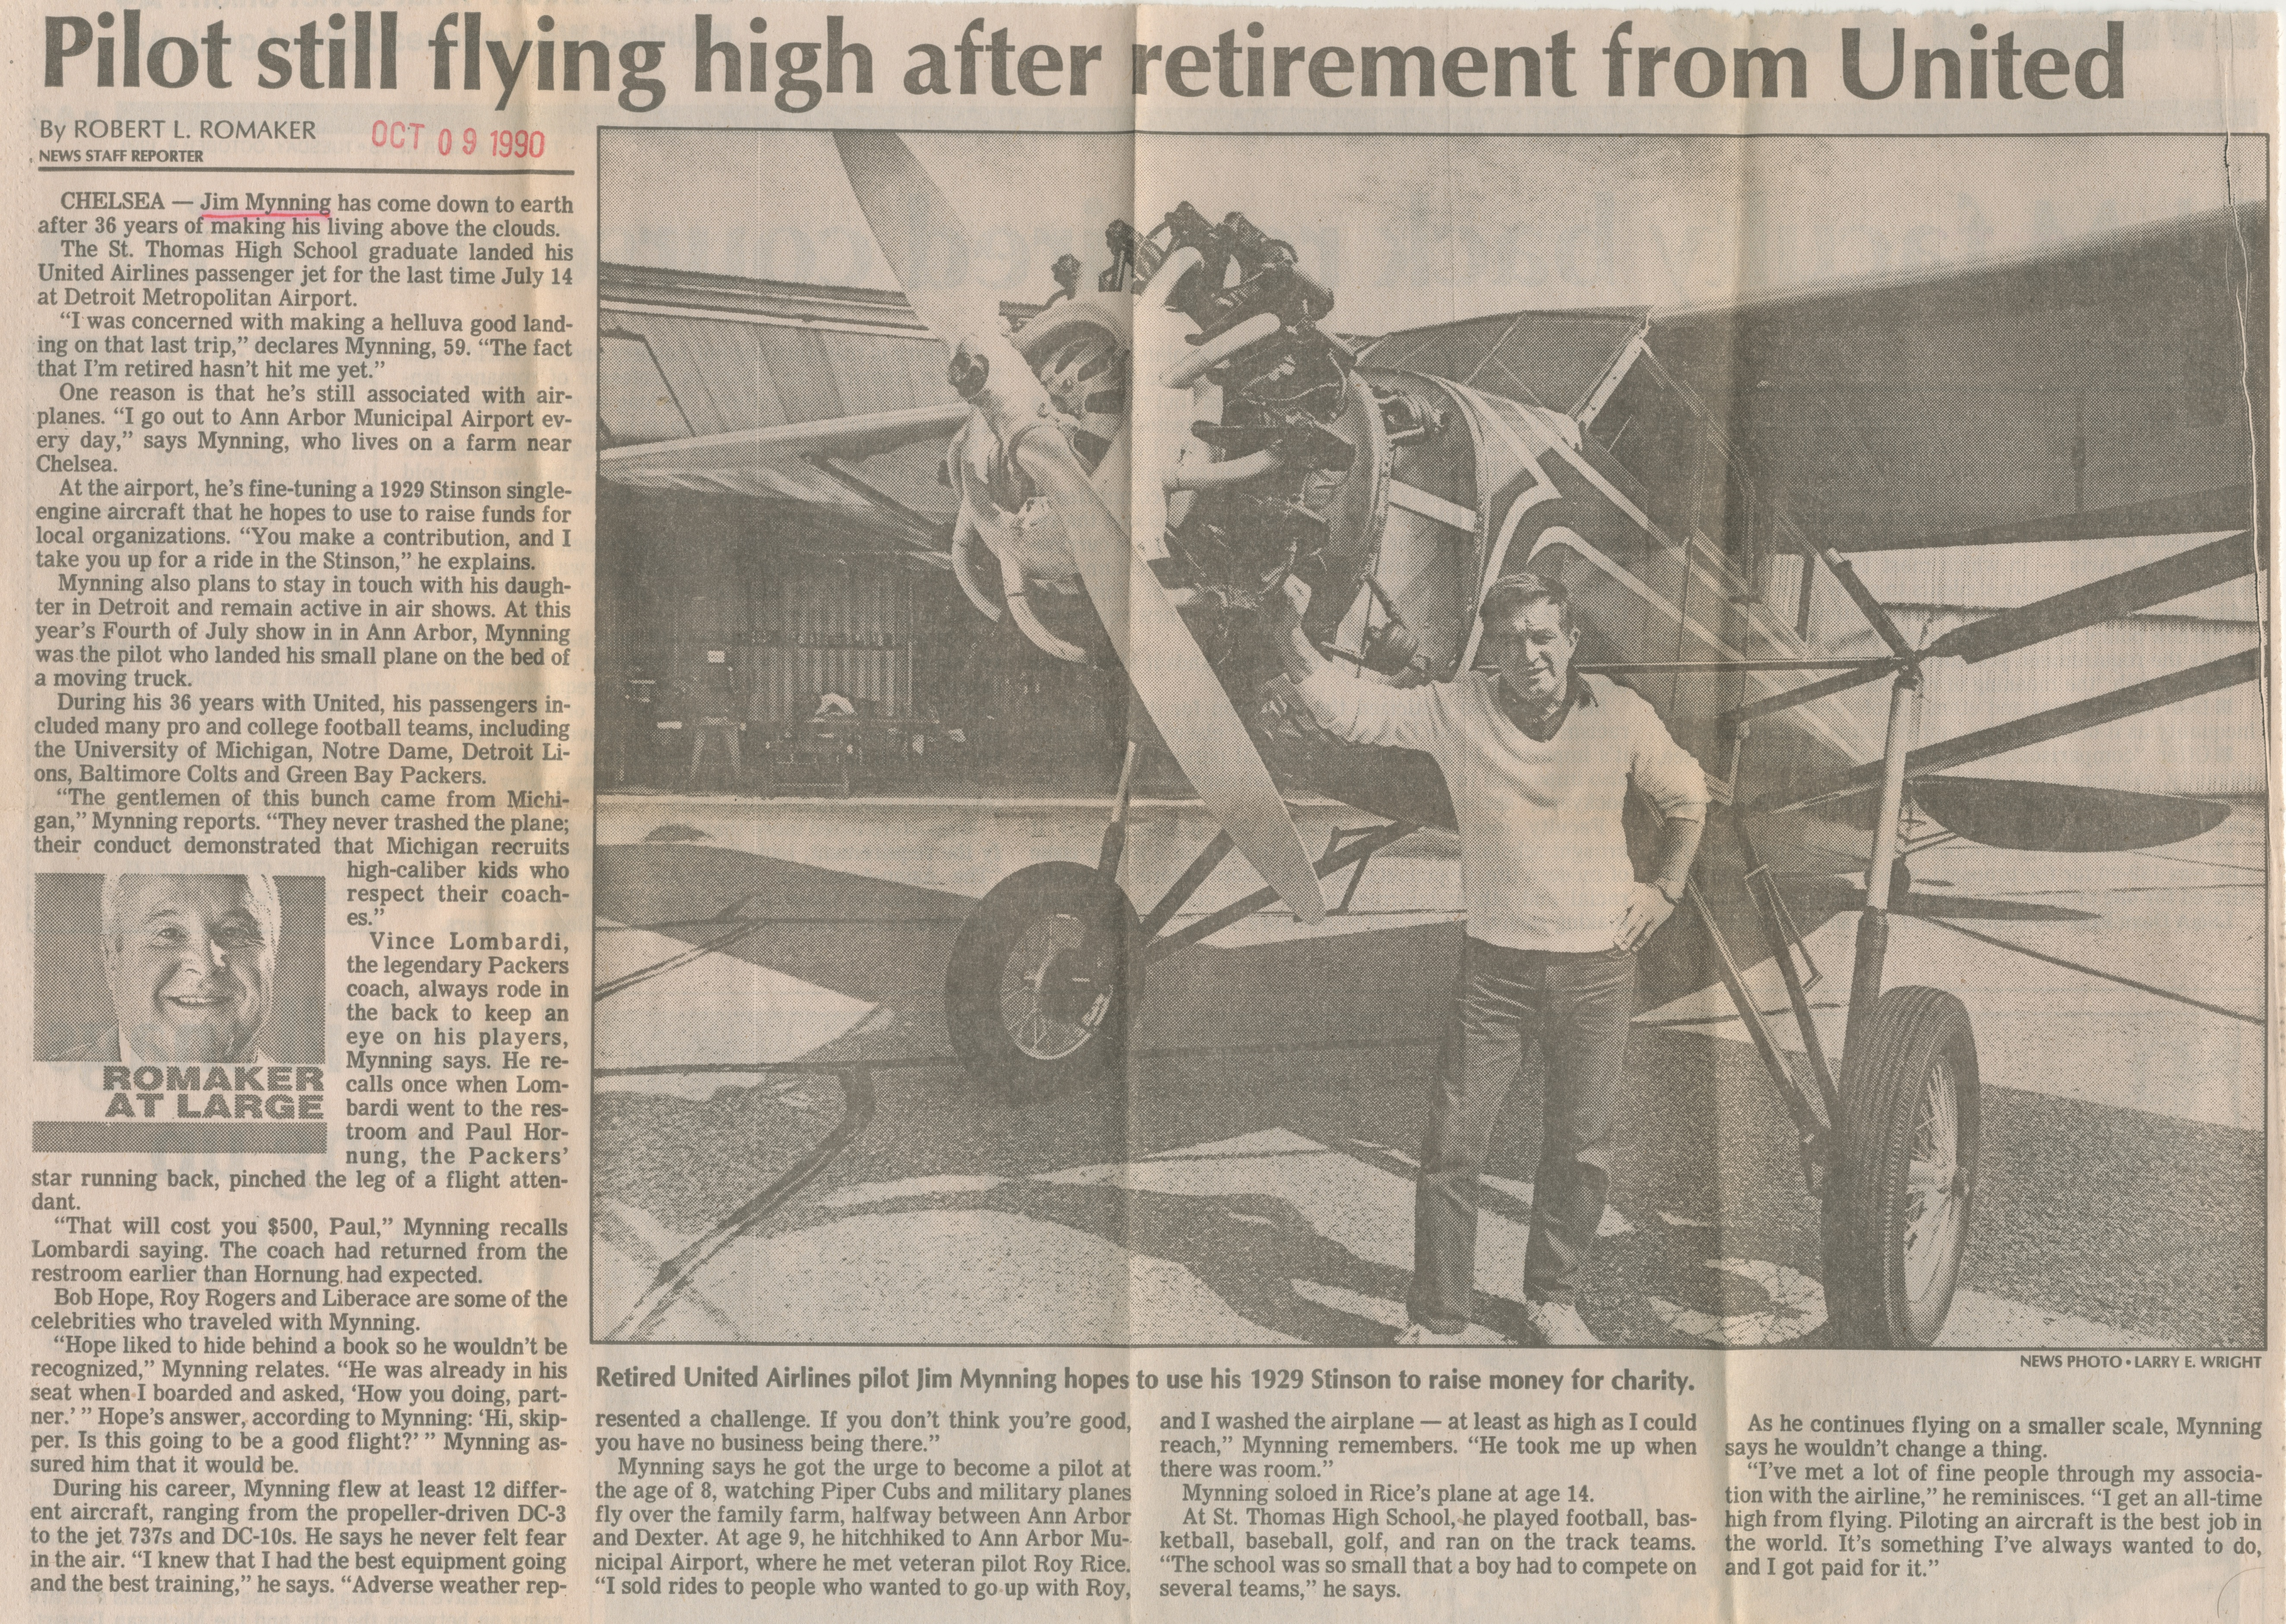 Pilot still flying high after retirement from United image